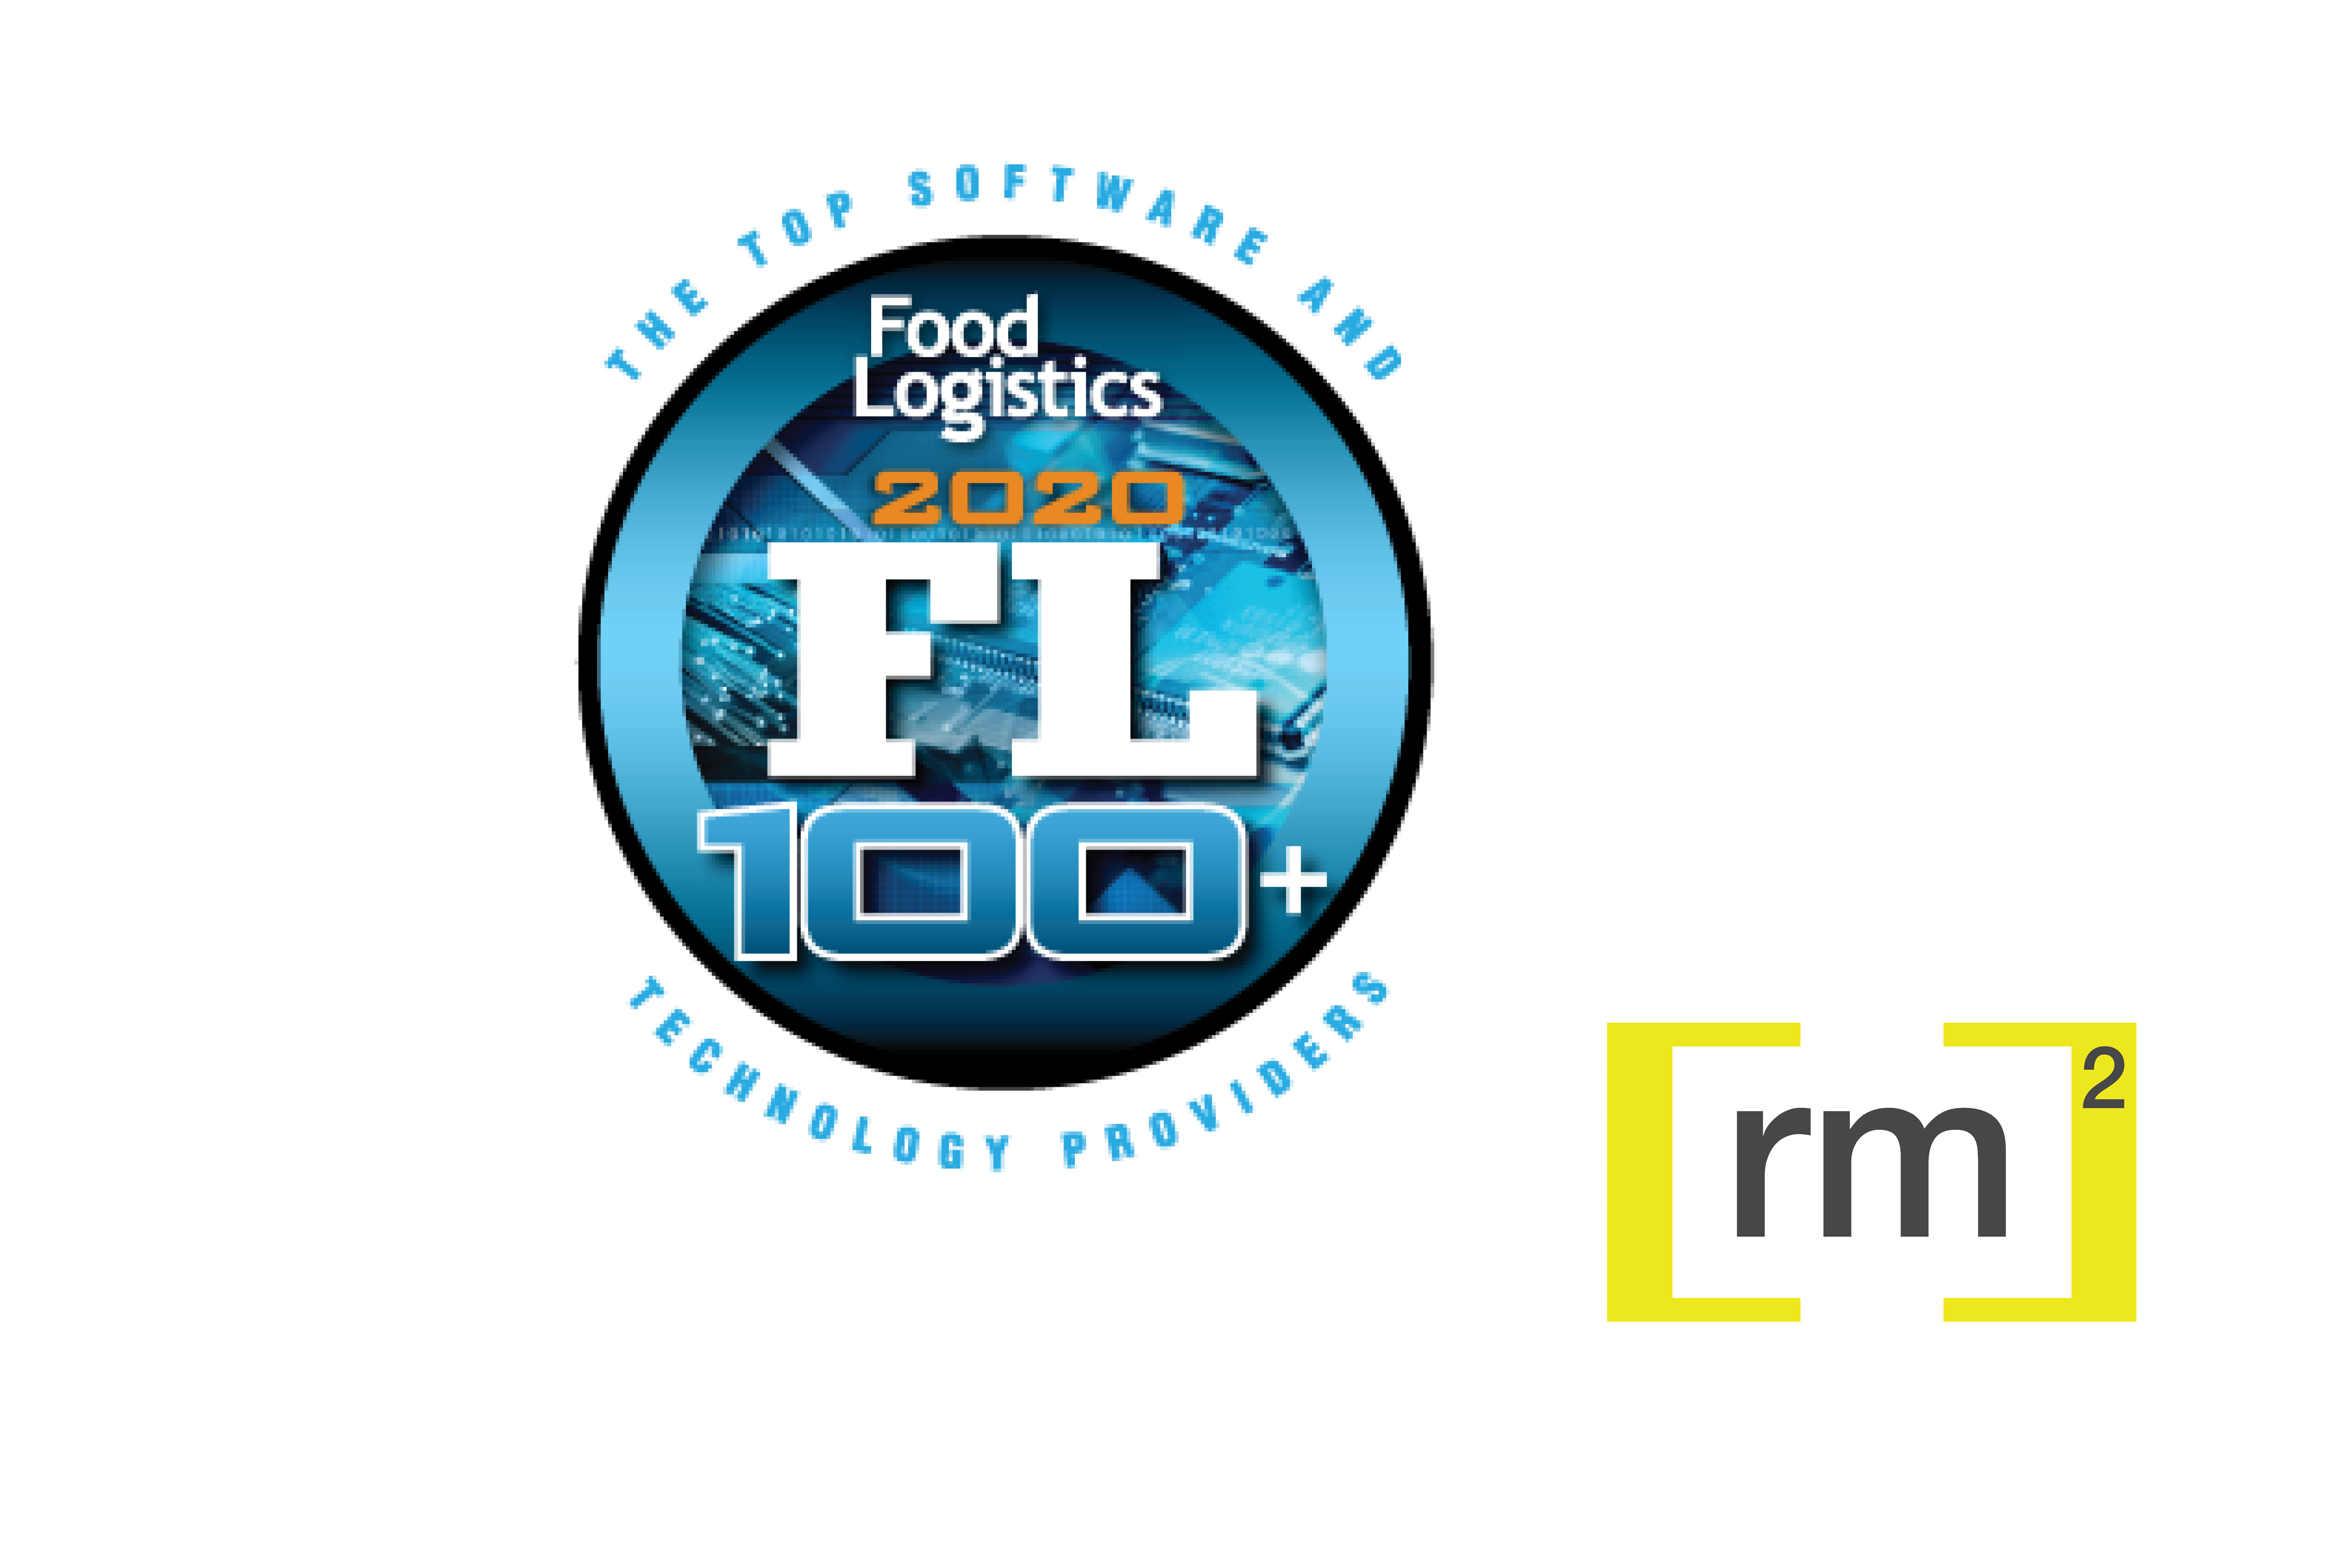 RM2 Named to Food Logistics' 2020 FL100+ Top Software and Technology Providers